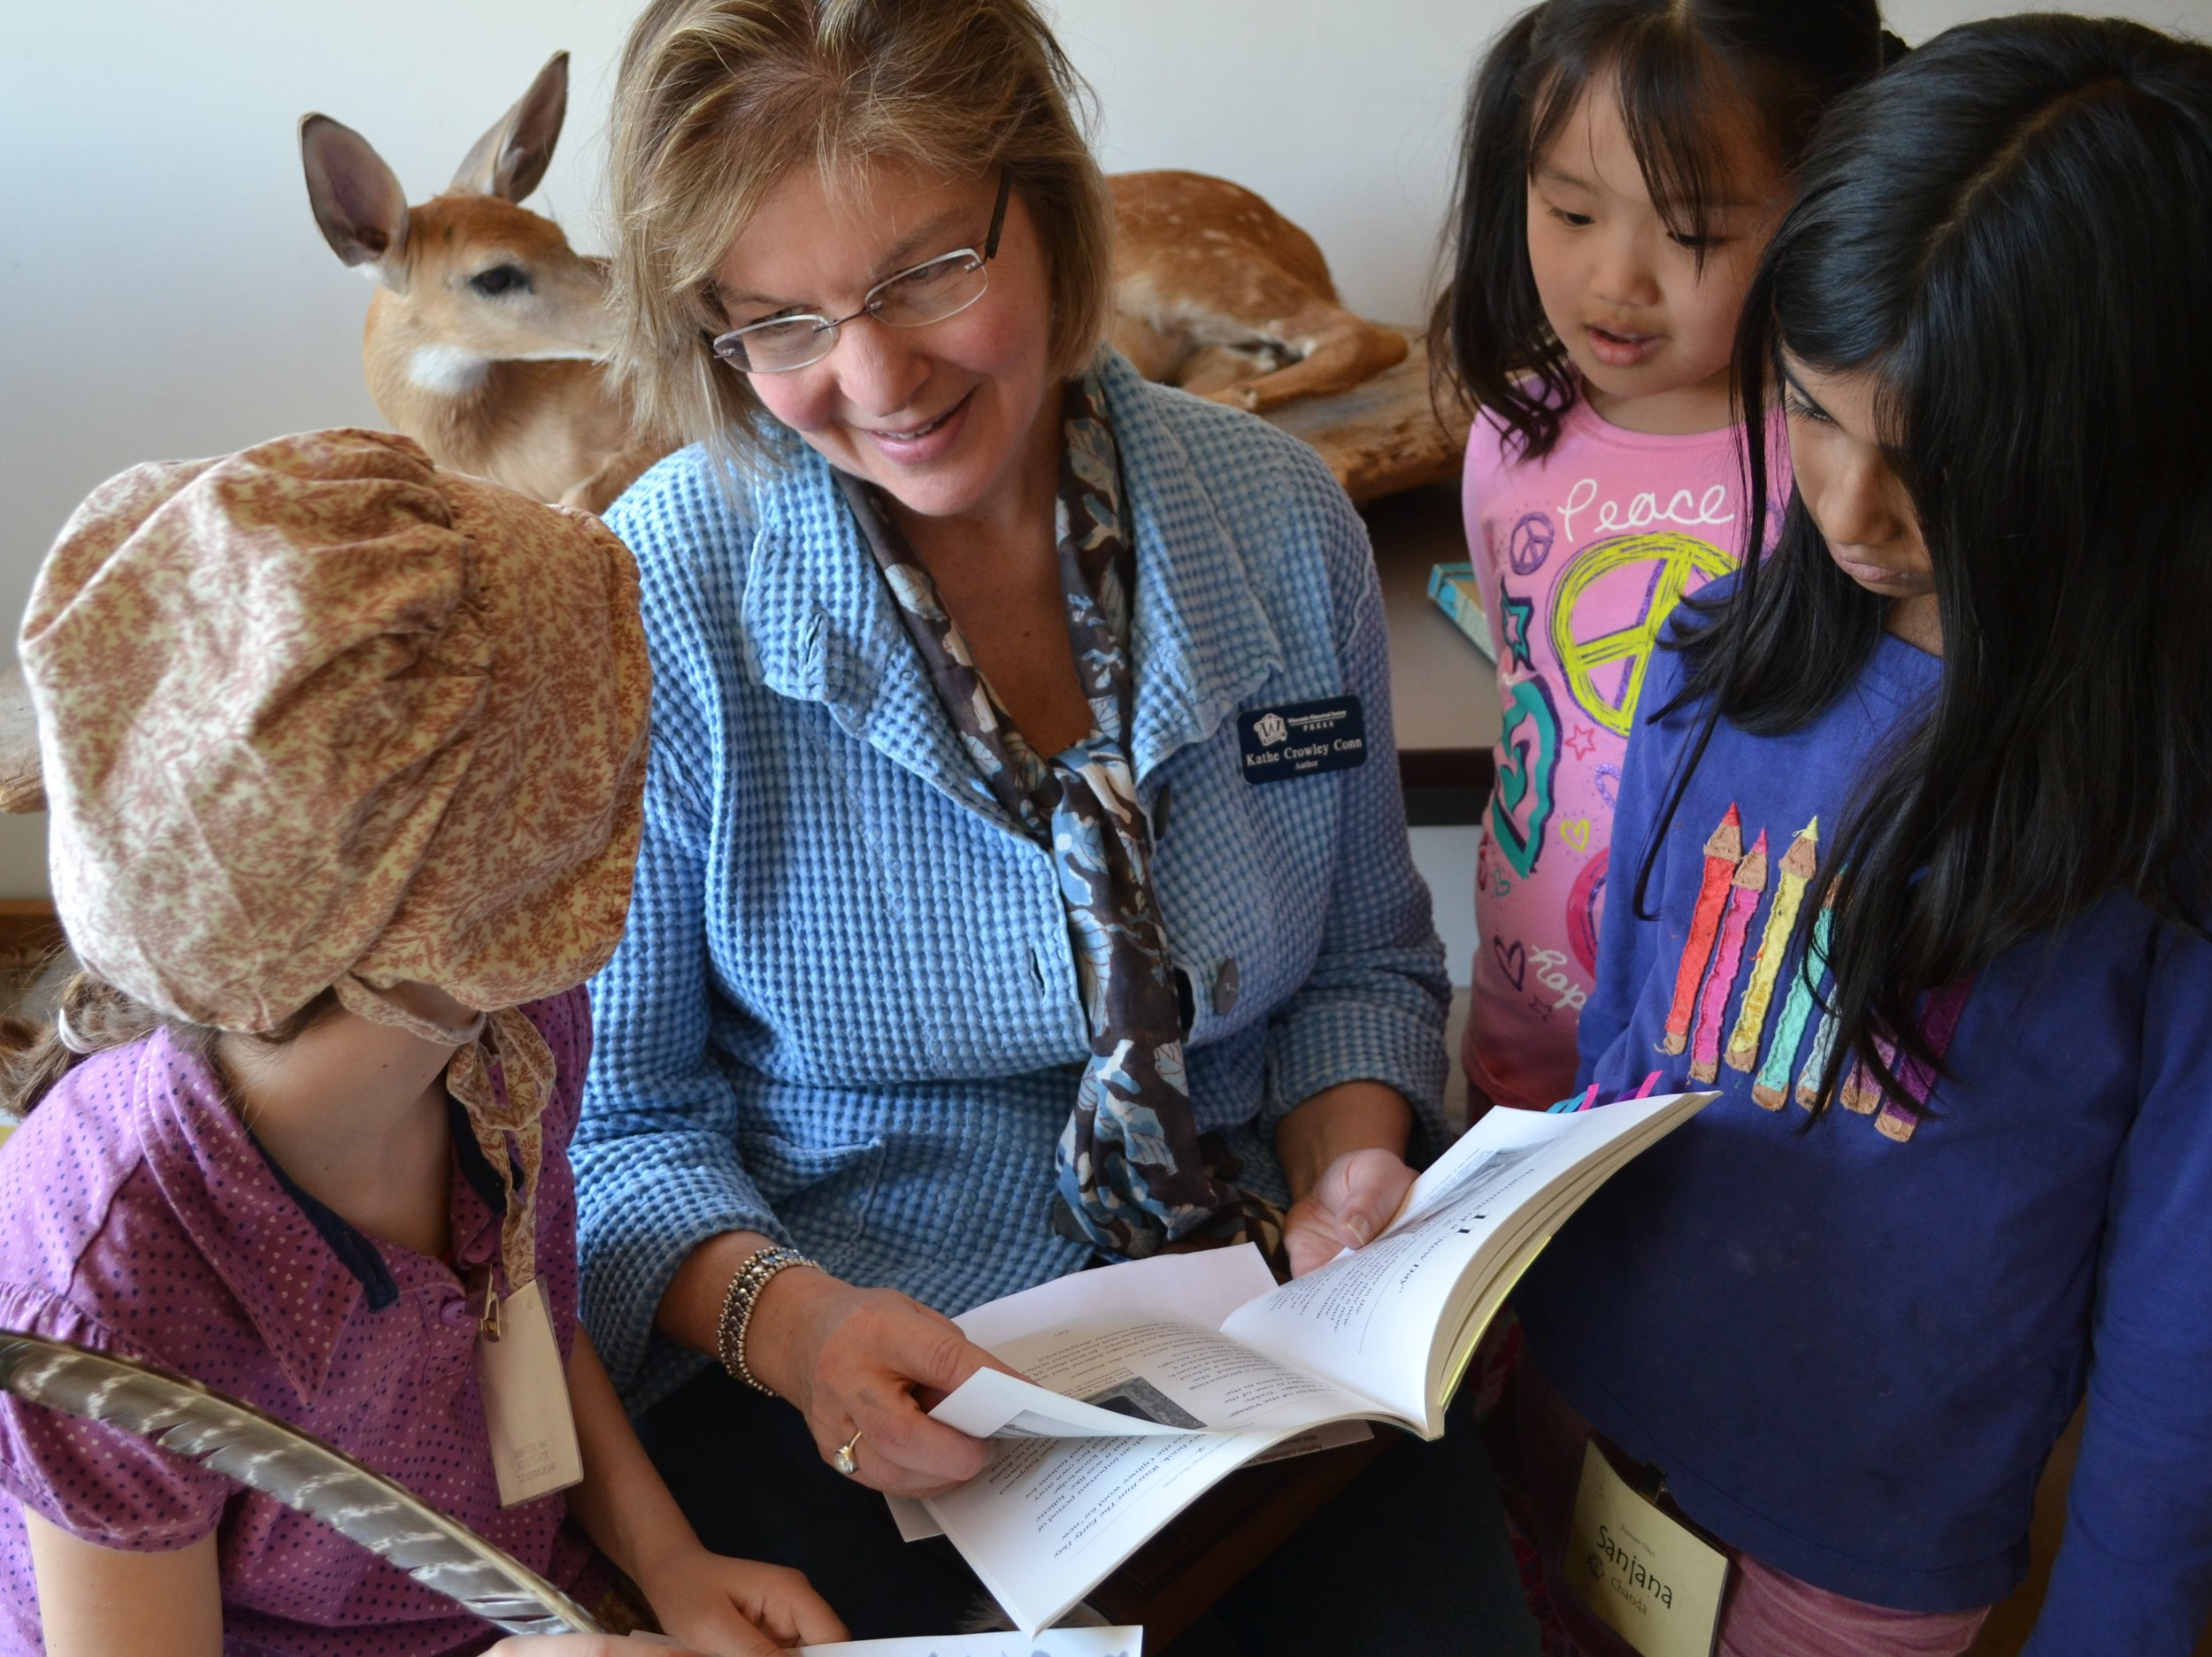 """Book launch event at the Aldo Leopold Nature Center. """"Pioneer"""" children are captivated by Juliette's tales. The children had great questions and insights about pioneer life and also wrote letters about their day's adventures the 'old fashioned way', just like Juliette!"""